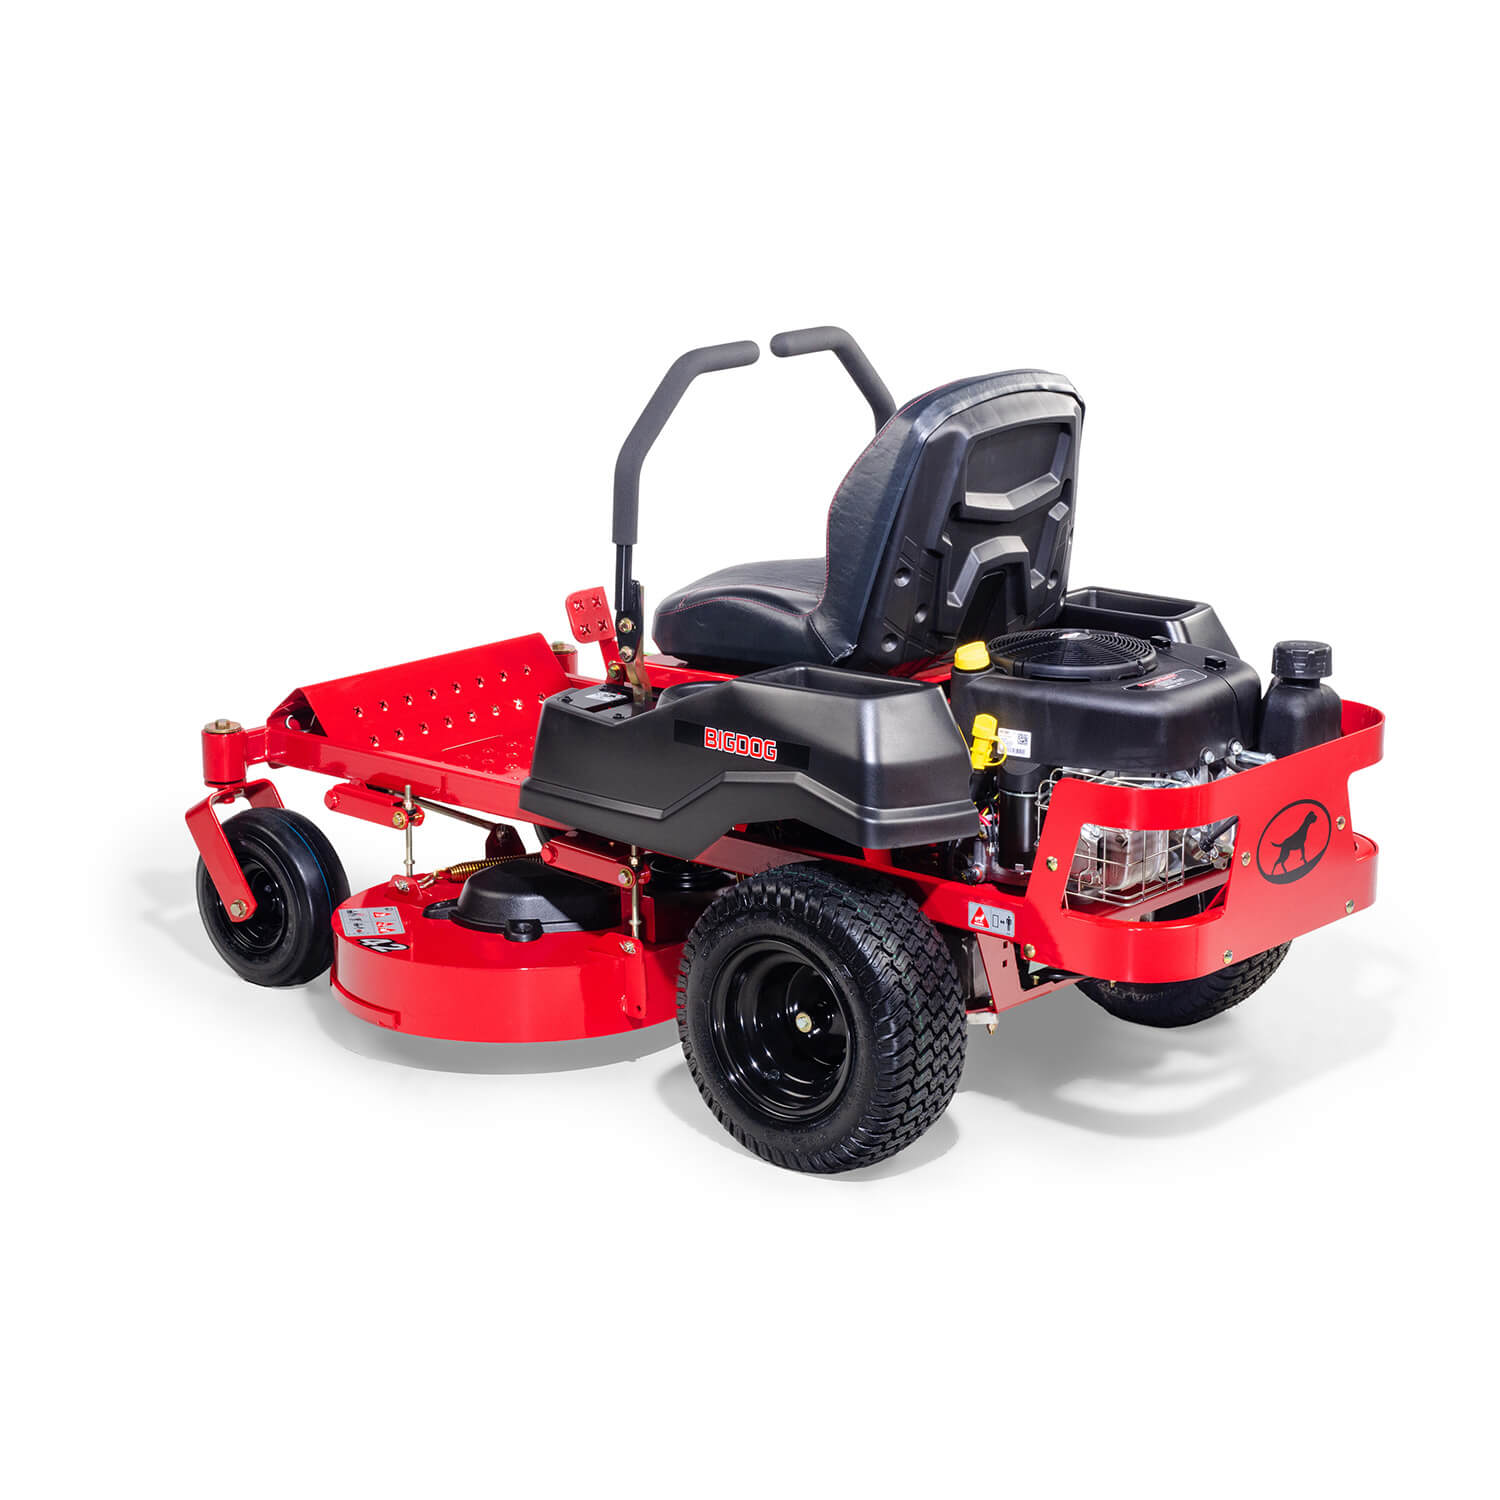 Image of the rear three quarters of a red mower showing the trim edge of the deck